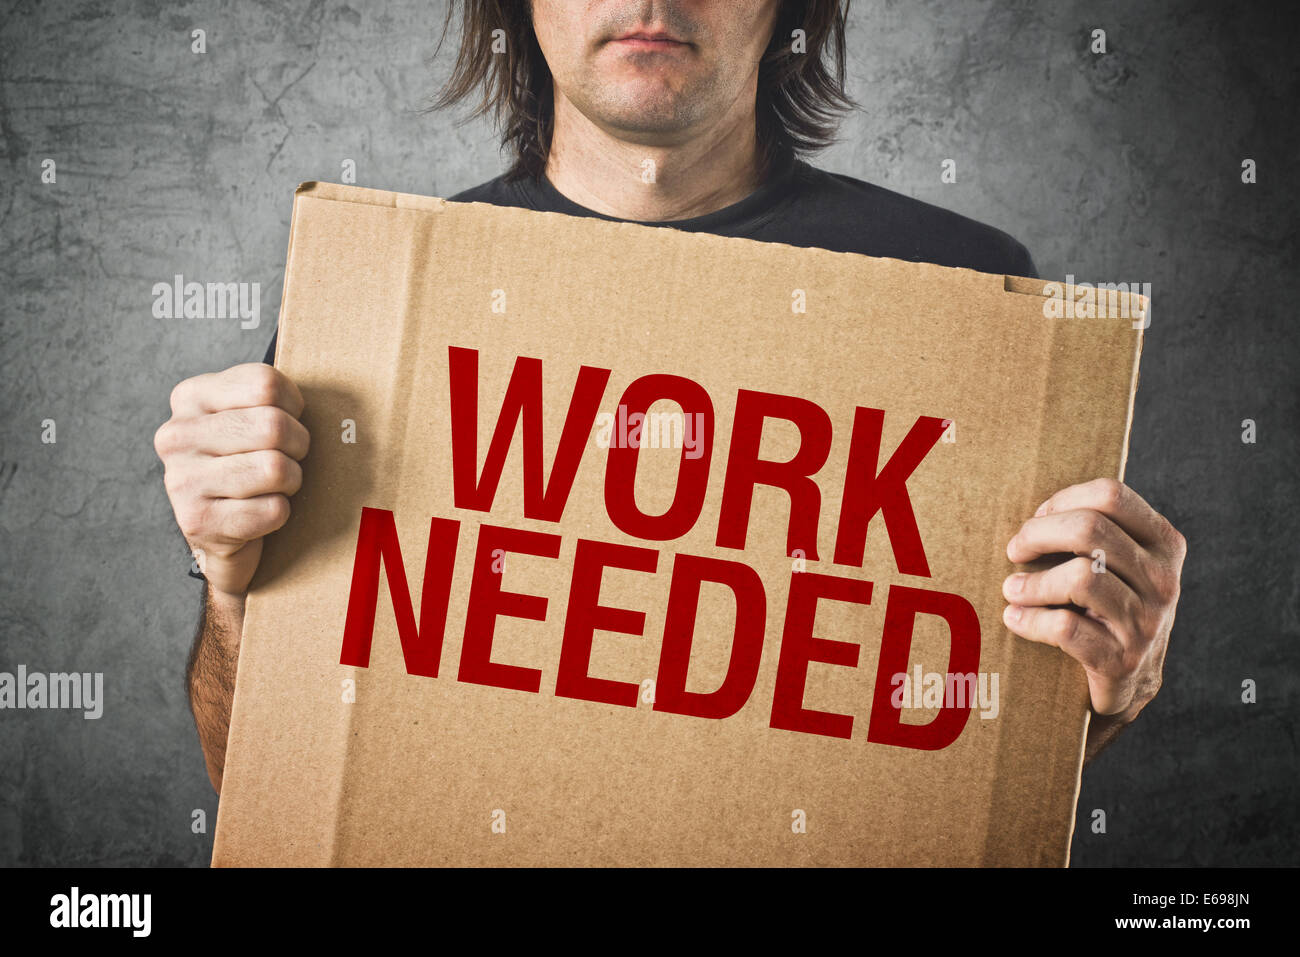 Man needs a job. Unemployed man holding board with title WORK NEEDED - Stock Image